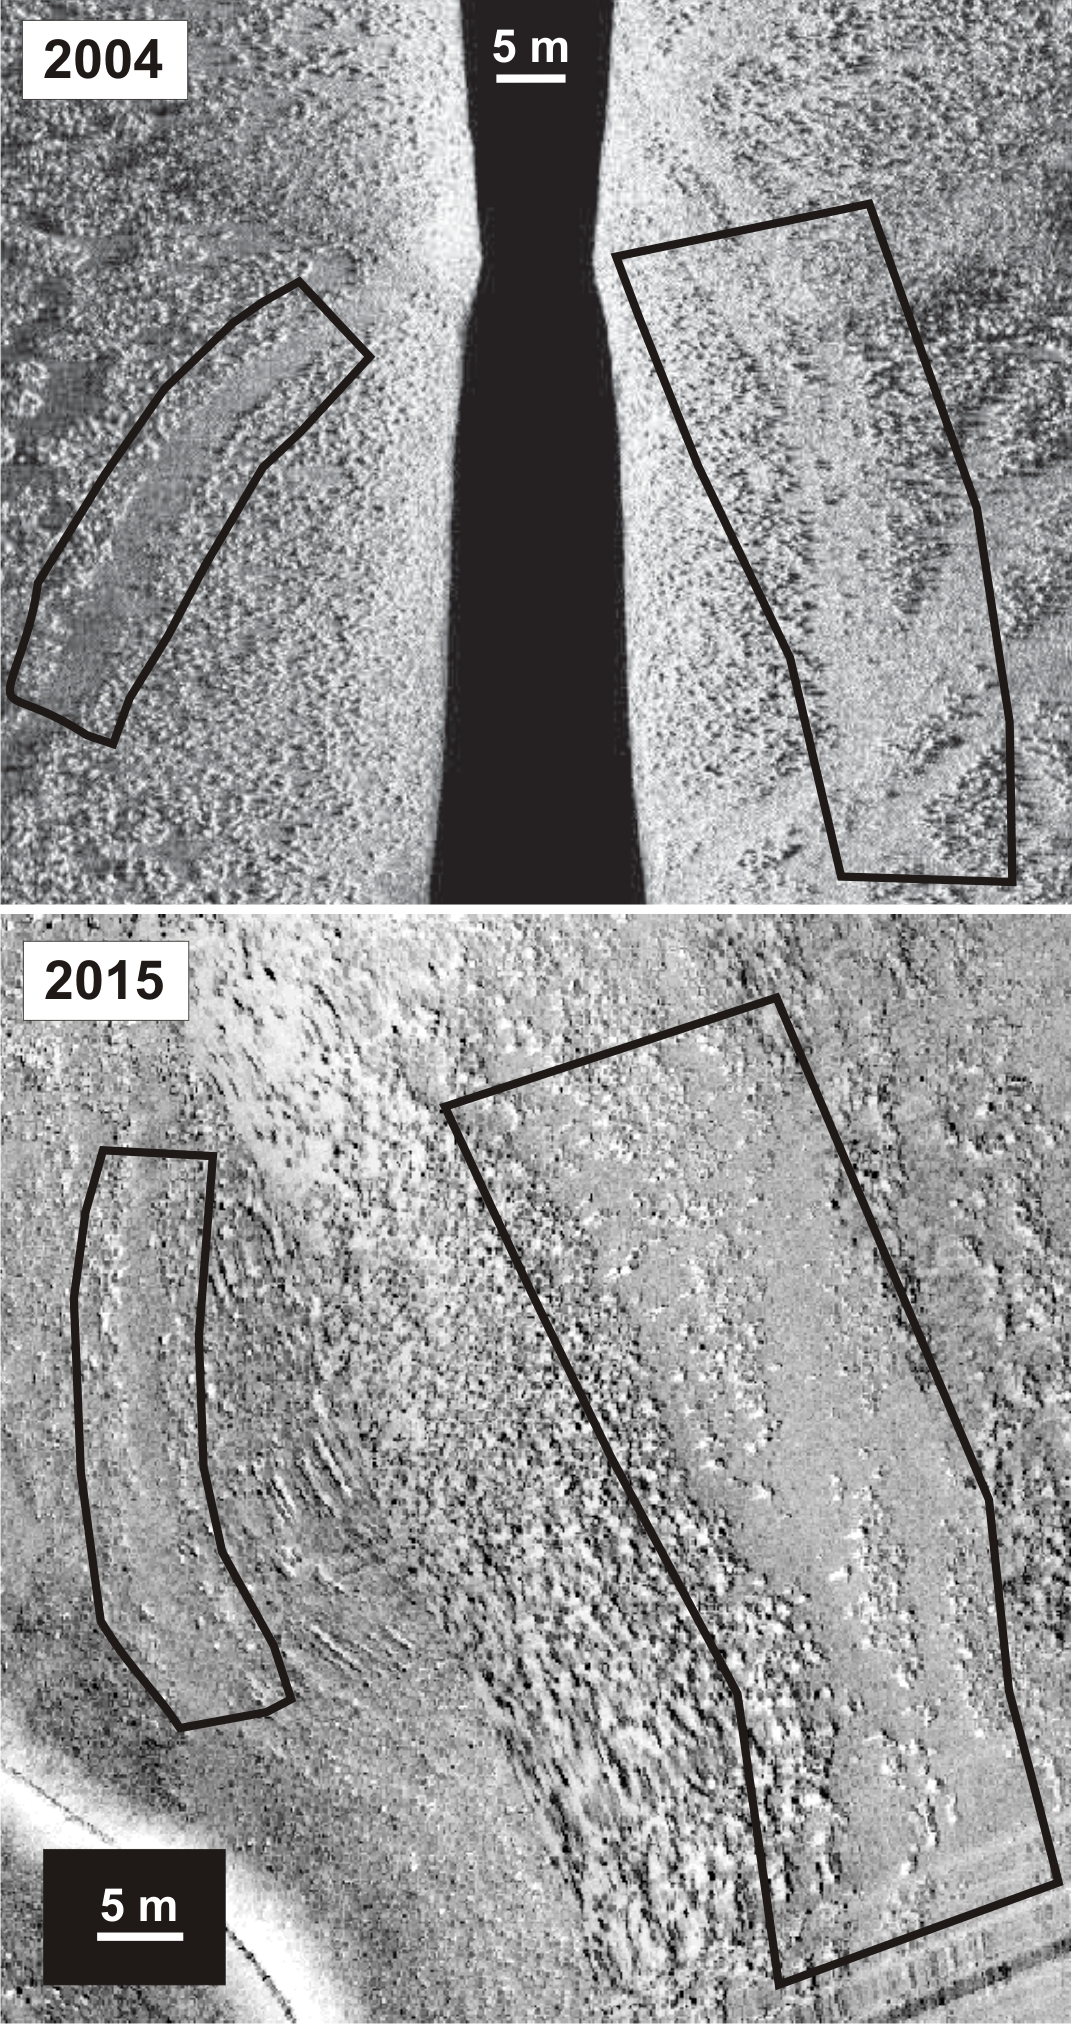 Figure 2. Sidescan imagery from surveys in 2004 and 2015 showing persistence of demersal fishing tracks through serpulid reef habitat in the same location in Loch Creran, Argyll. Similar regions of track delimited by black polygons.